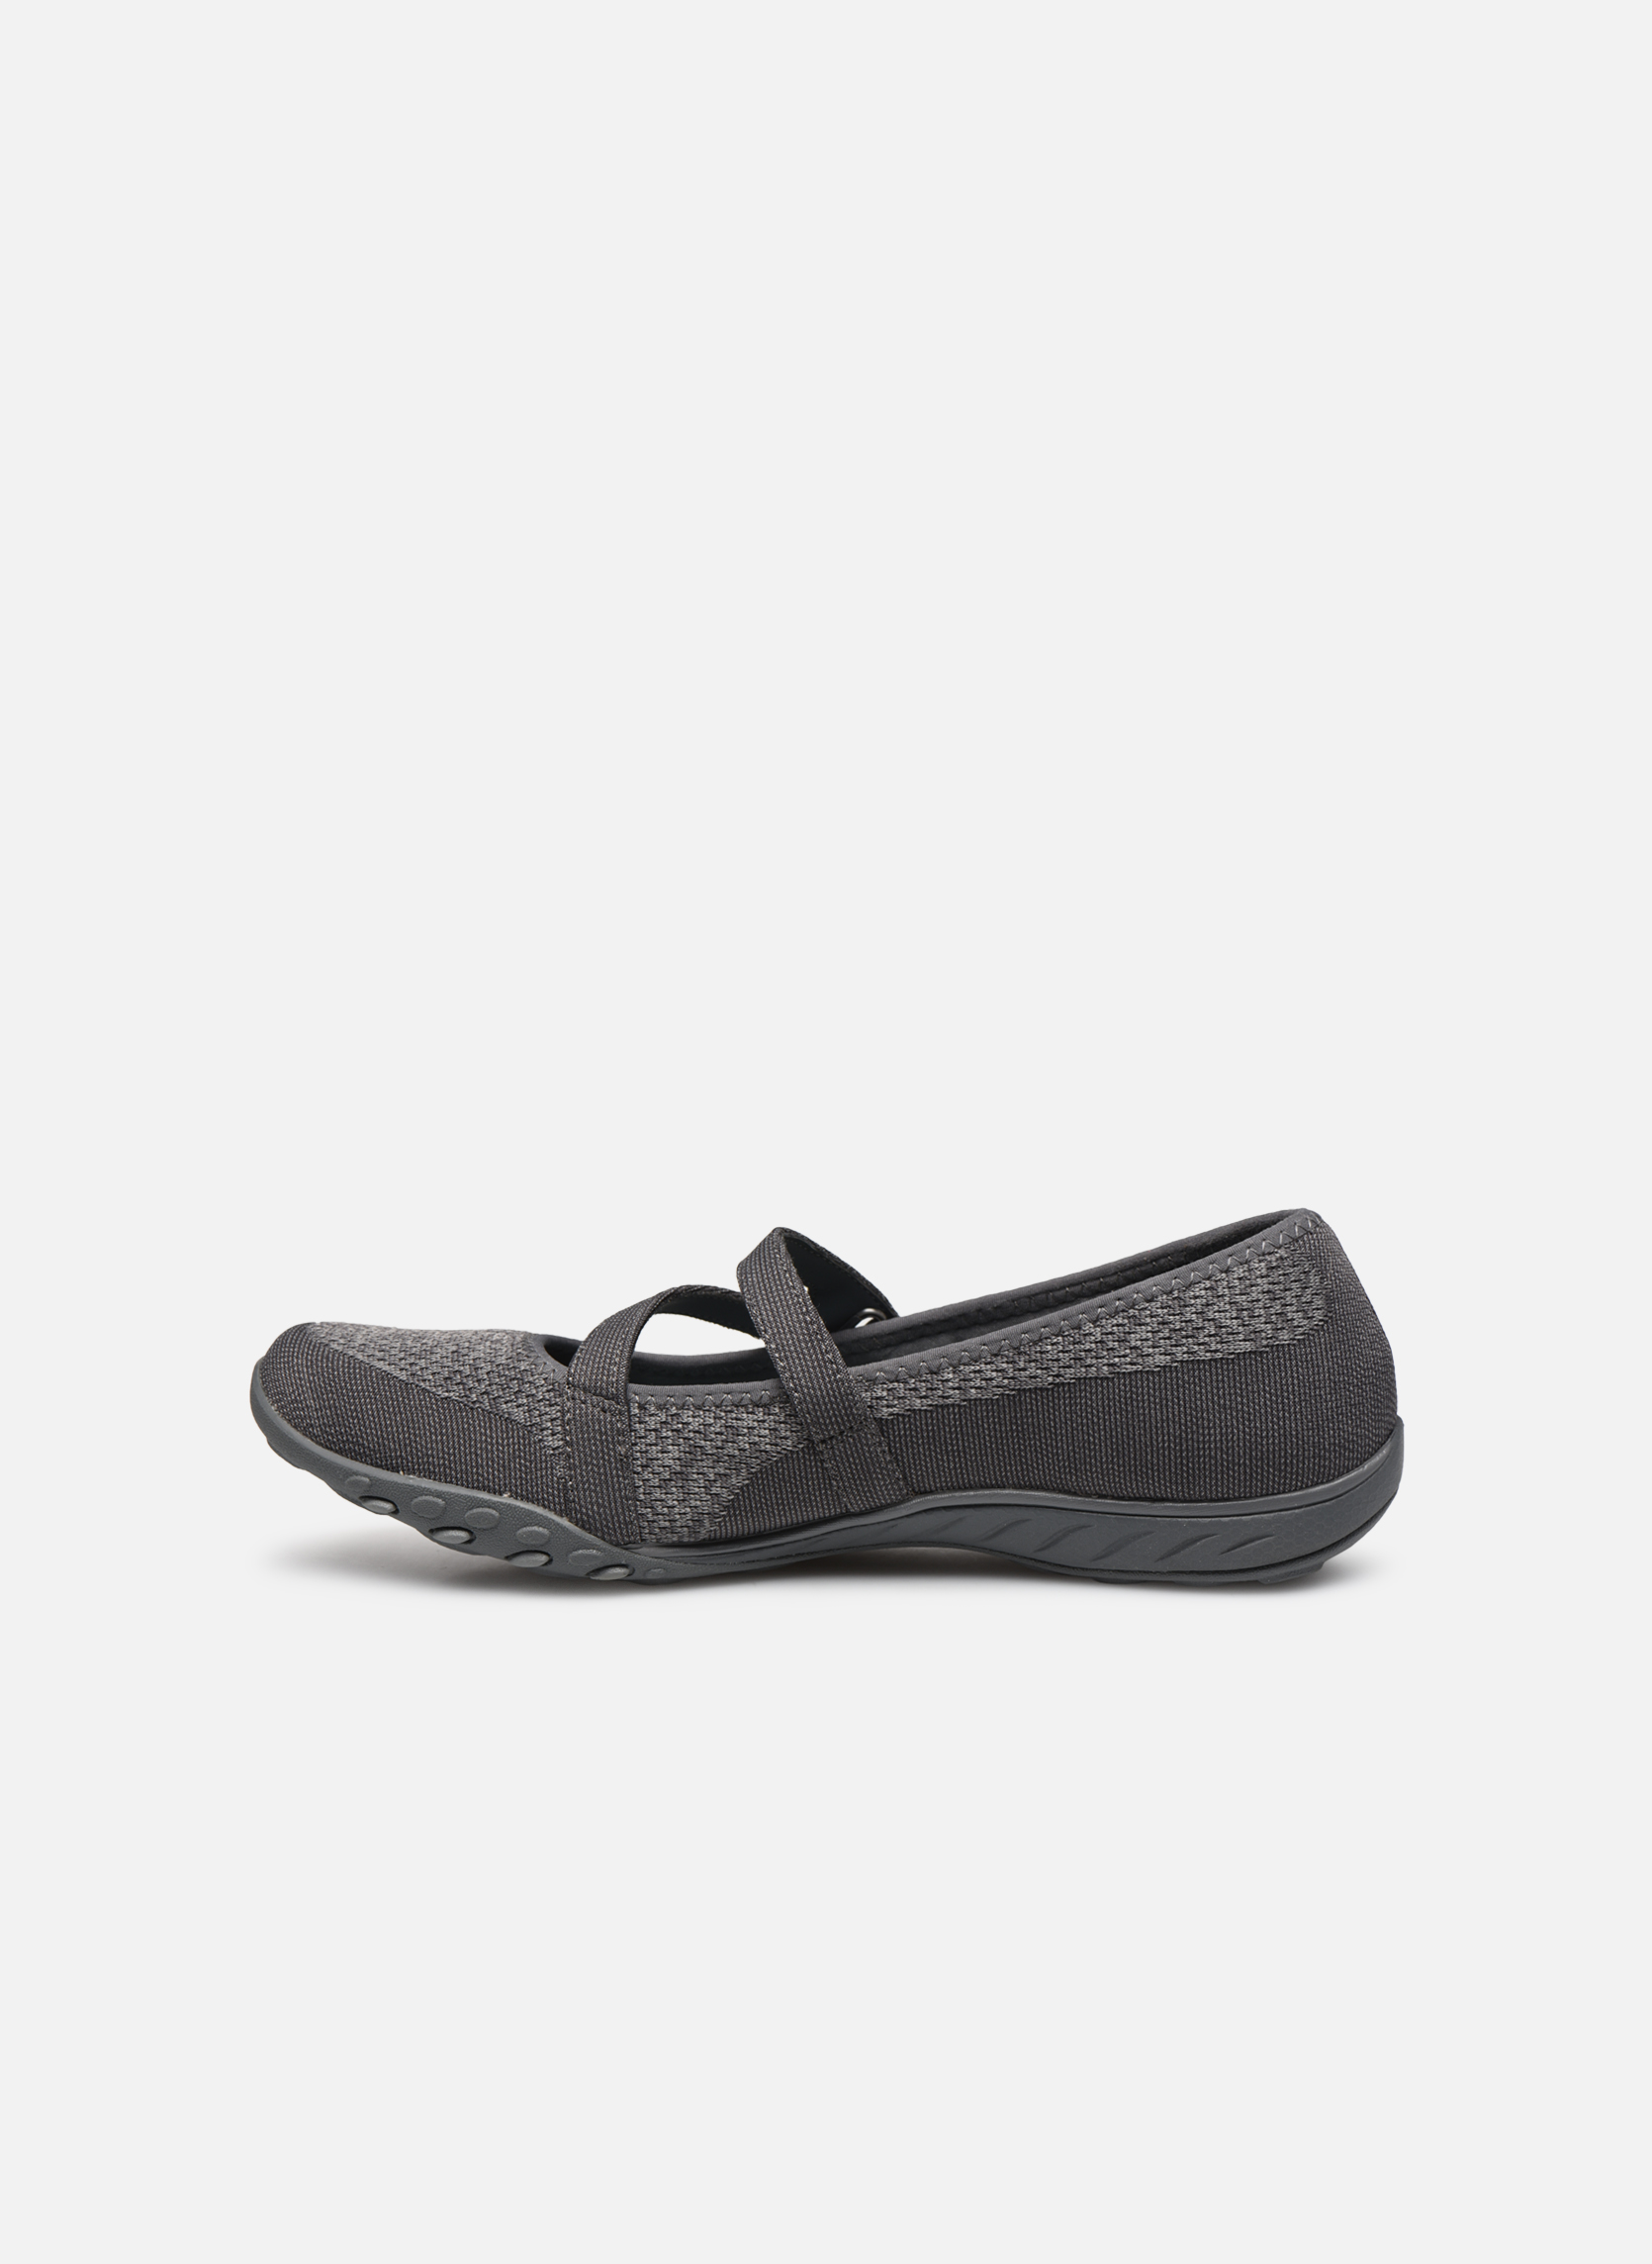 Ballet pumps Skechers Breathe-Easy - Lucky Grey front view